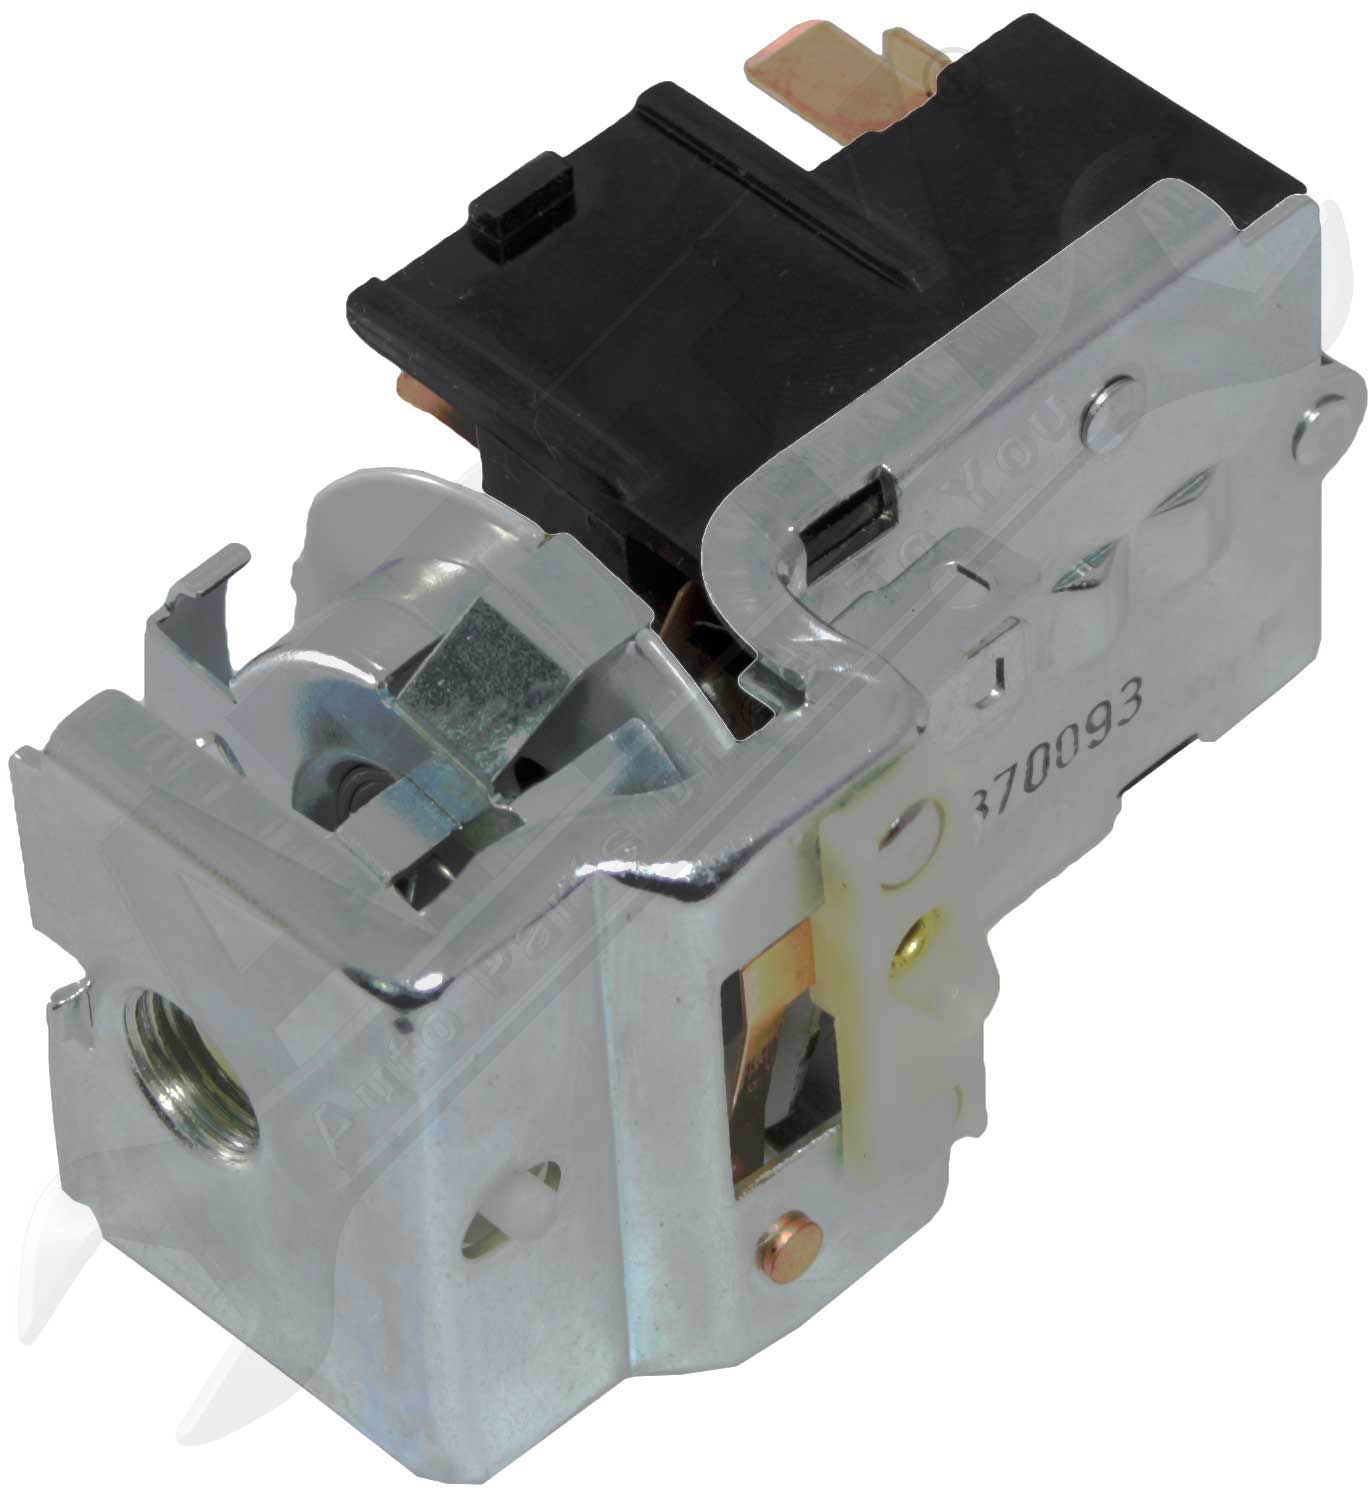 1996 Jeep Cherokee Headlight Switch - Brand New Electrical Headlight Headlamp Switch See Apdty If You Need The Wiring Harness Pigtail Fits Jeep Cherokee Jeep Xj - 1996 Jeep Cherokee Headlight Switch